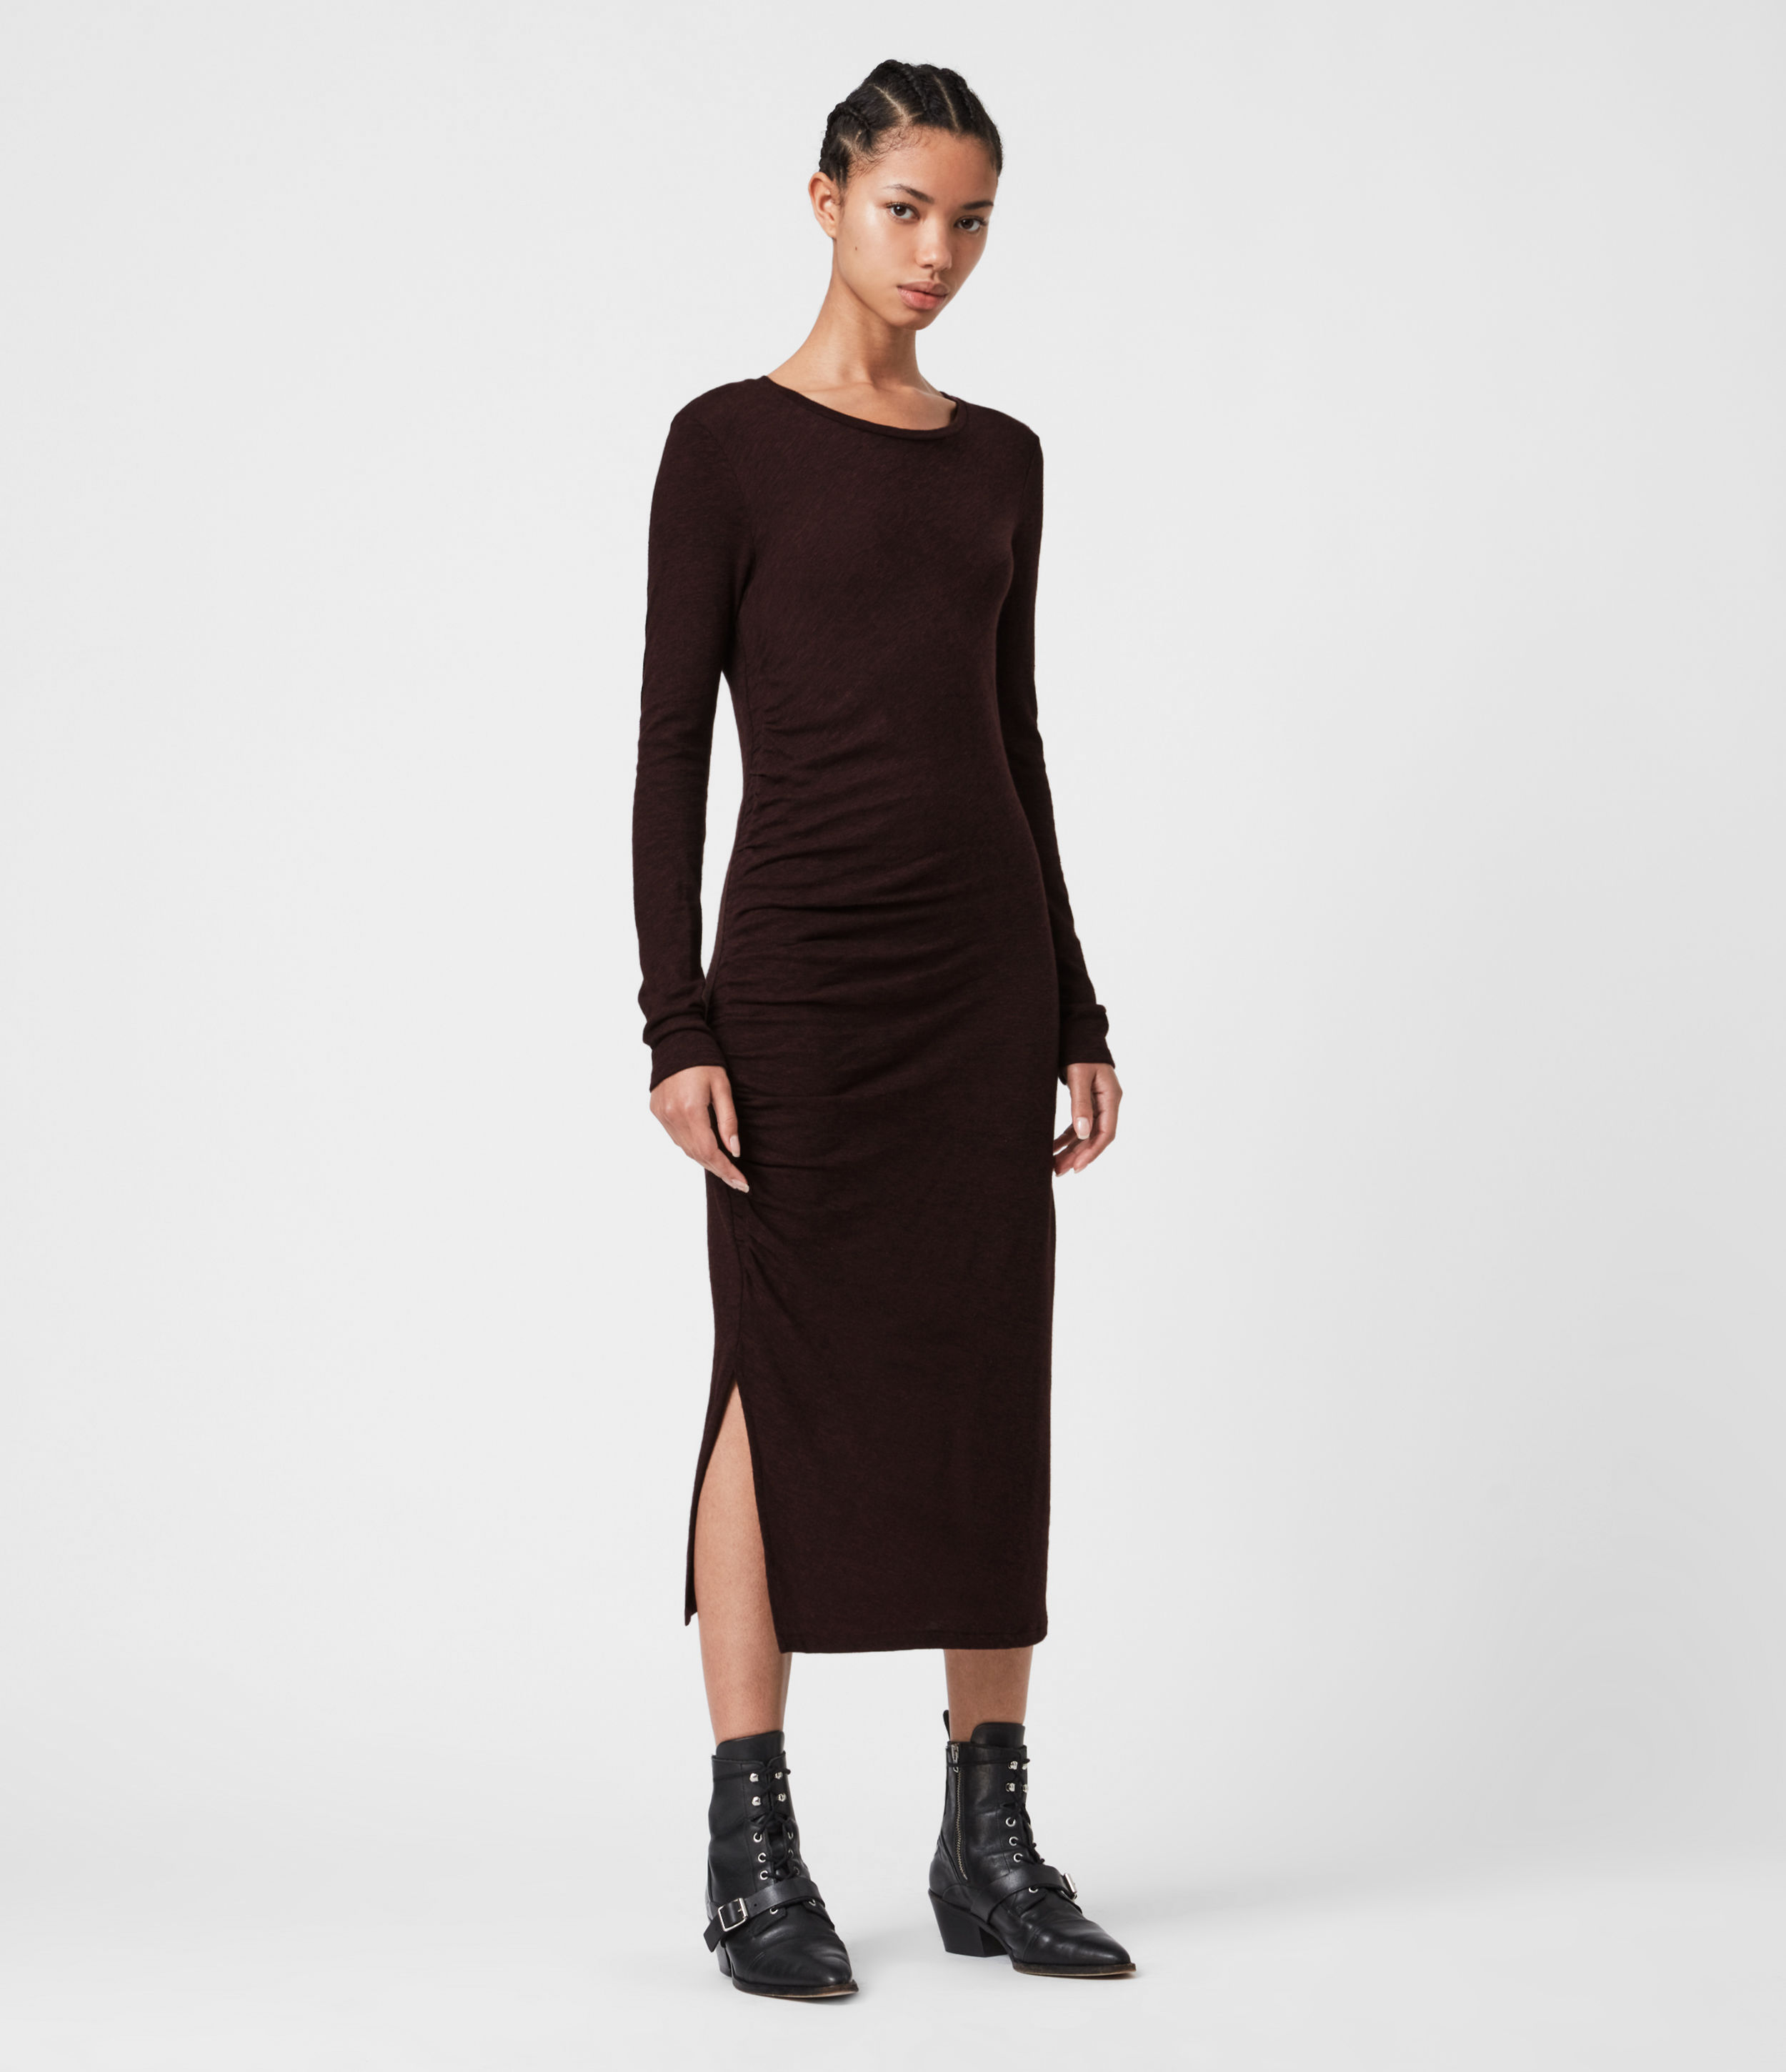 AllSaints Tina Dress